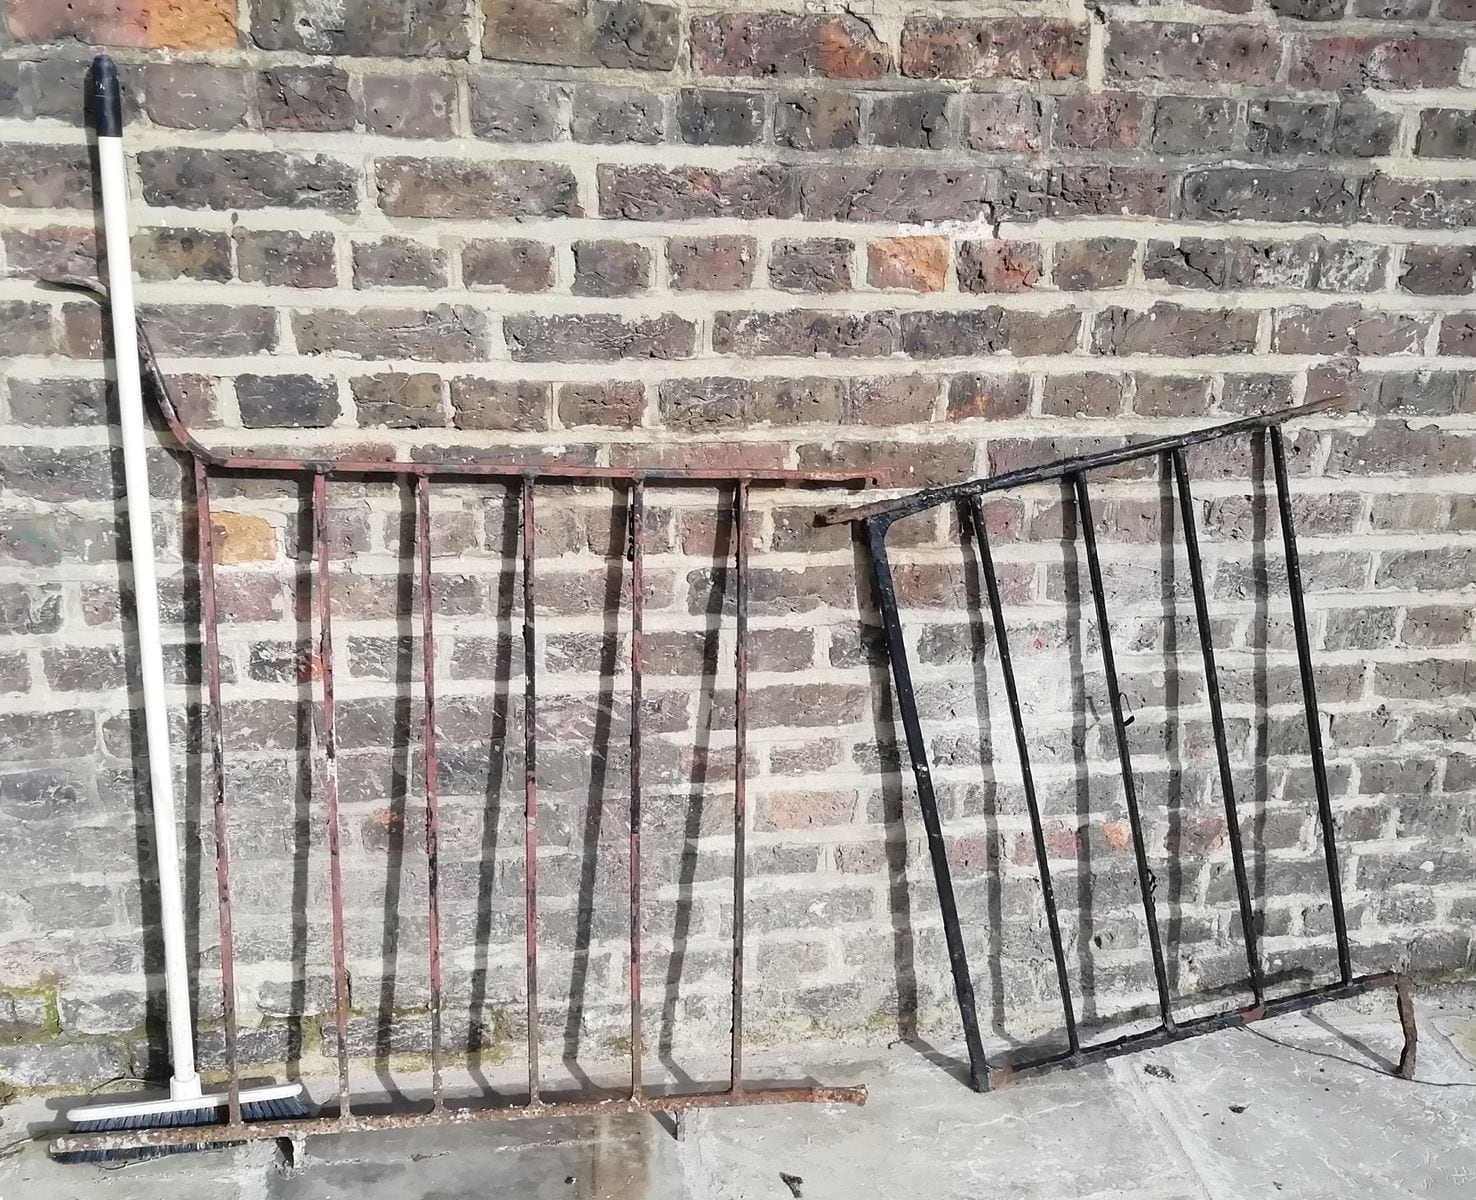 Restoration and Relocation of Balustrade, Islington, London N1 7